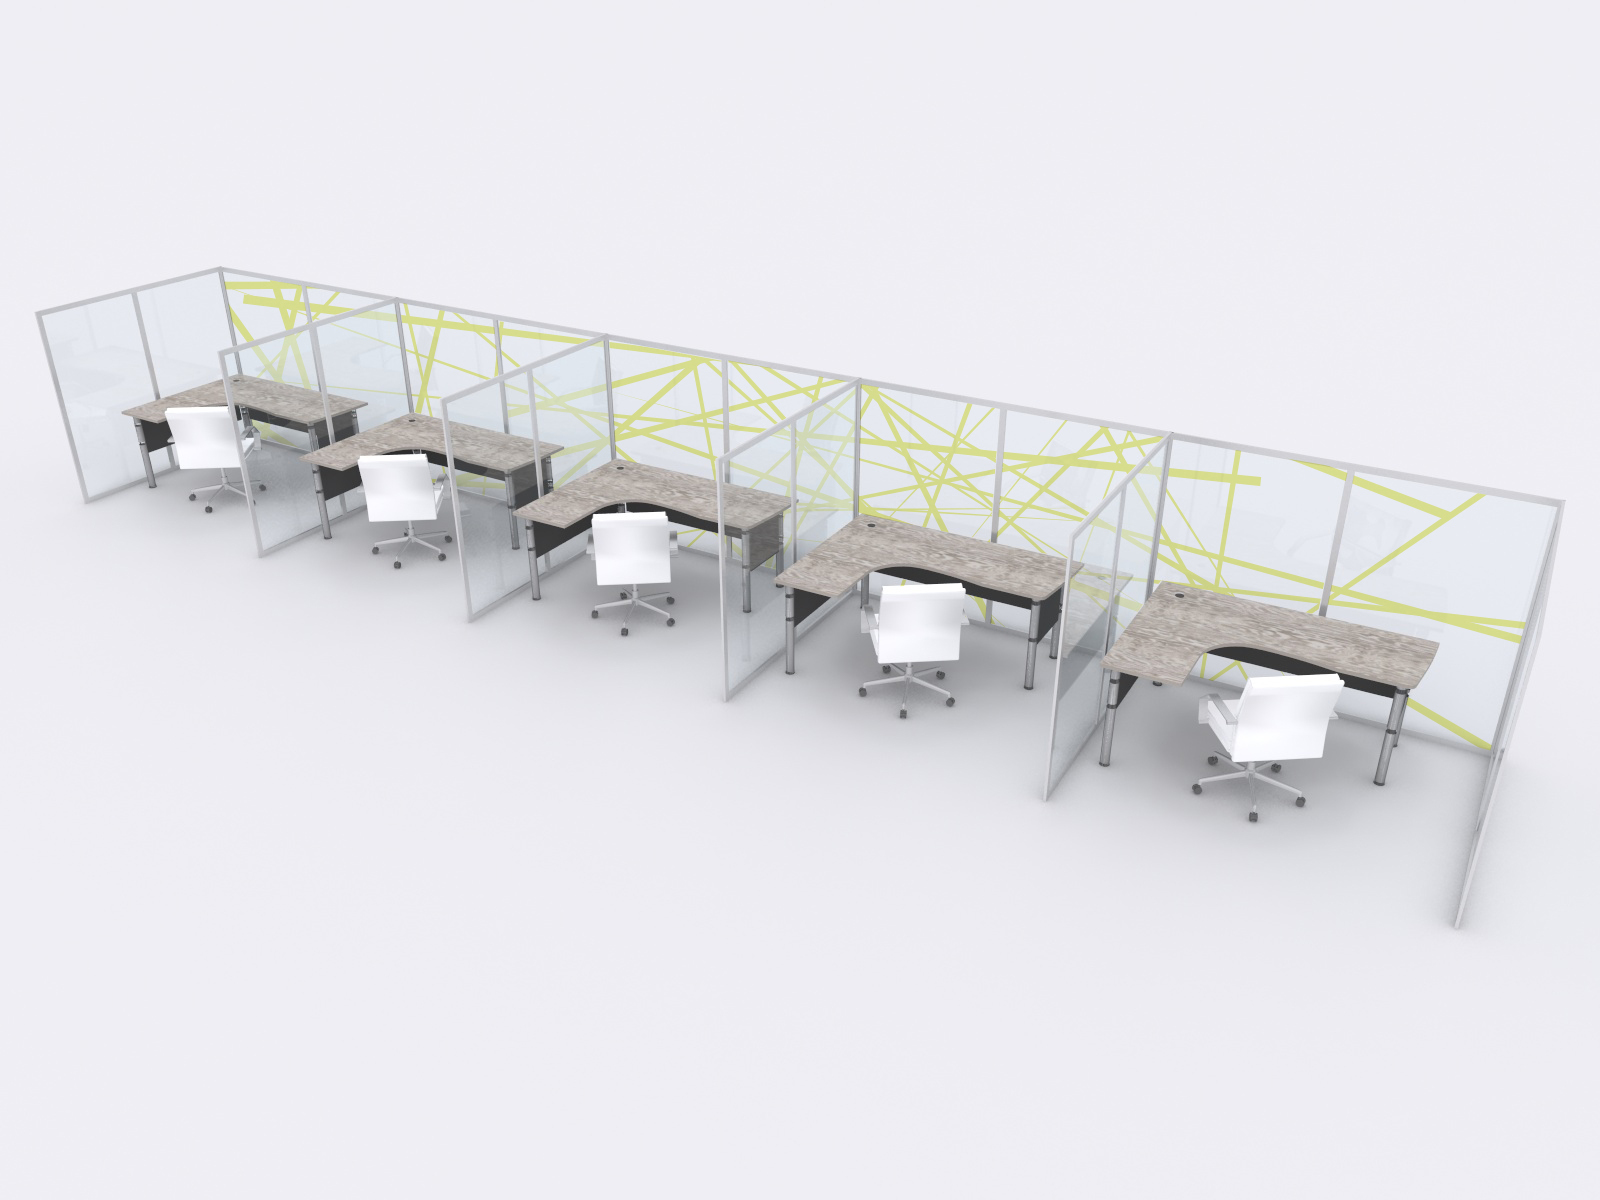 050520-Office-Pod-Five-Modul-38-and-46x72-View-20000Design